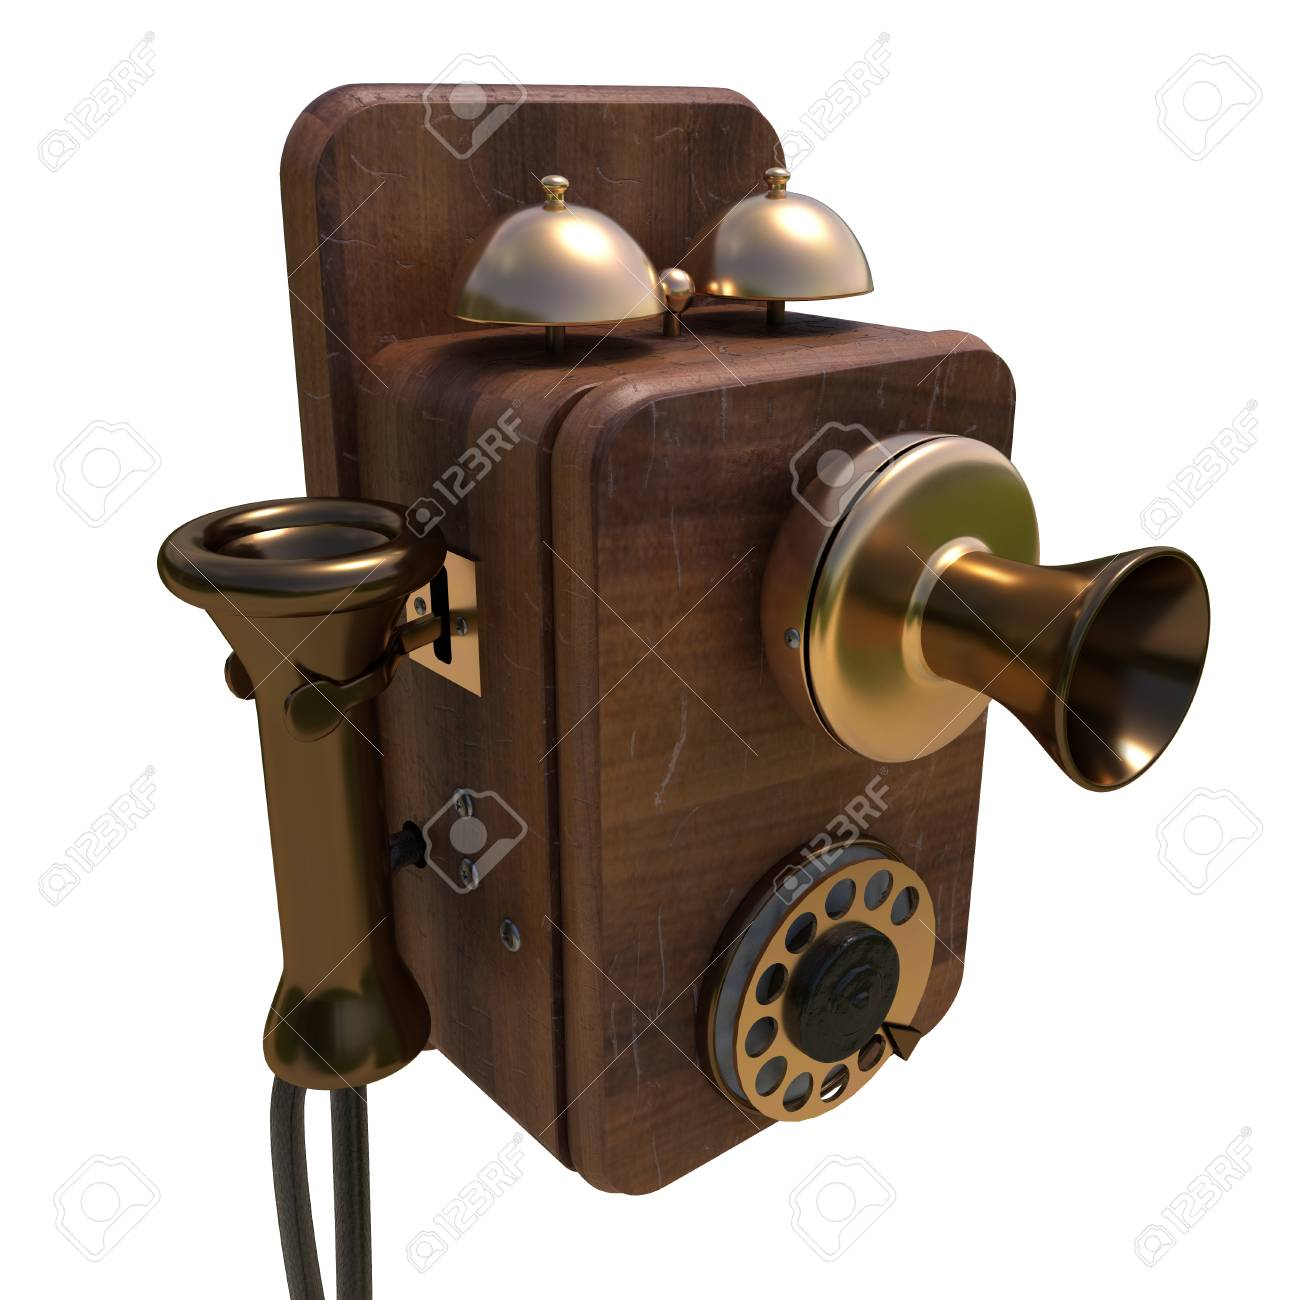 hight resolution of old antique phone stock photo 71930377